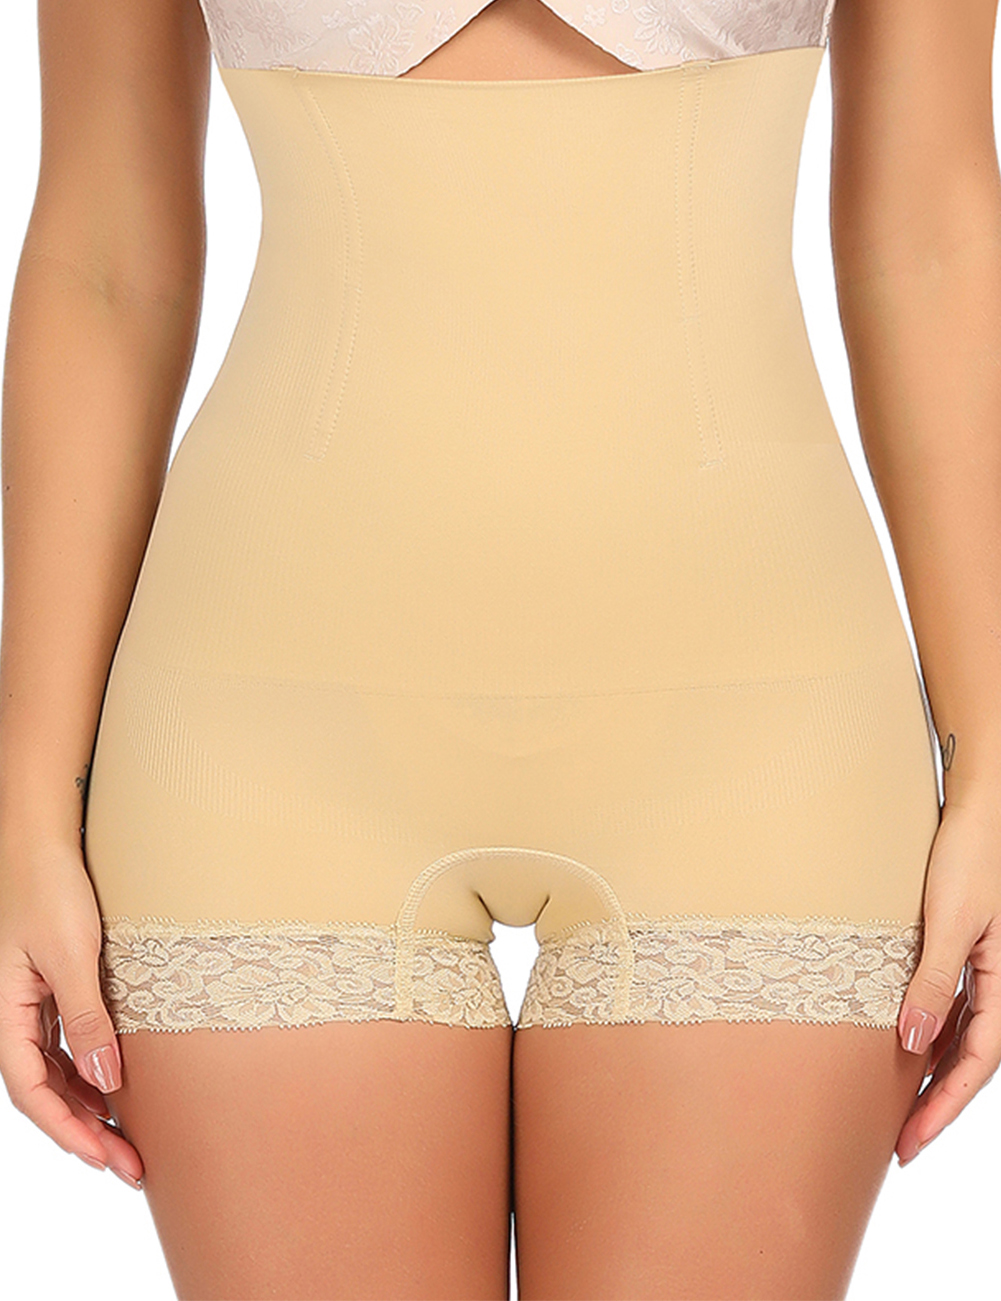 //cdn.affectcloud.com/feelingirldress/upload/imgs/Shapewear/Butt_Lift_Shaper/LB6212/LB6212-201912245e01b74258993.jpg